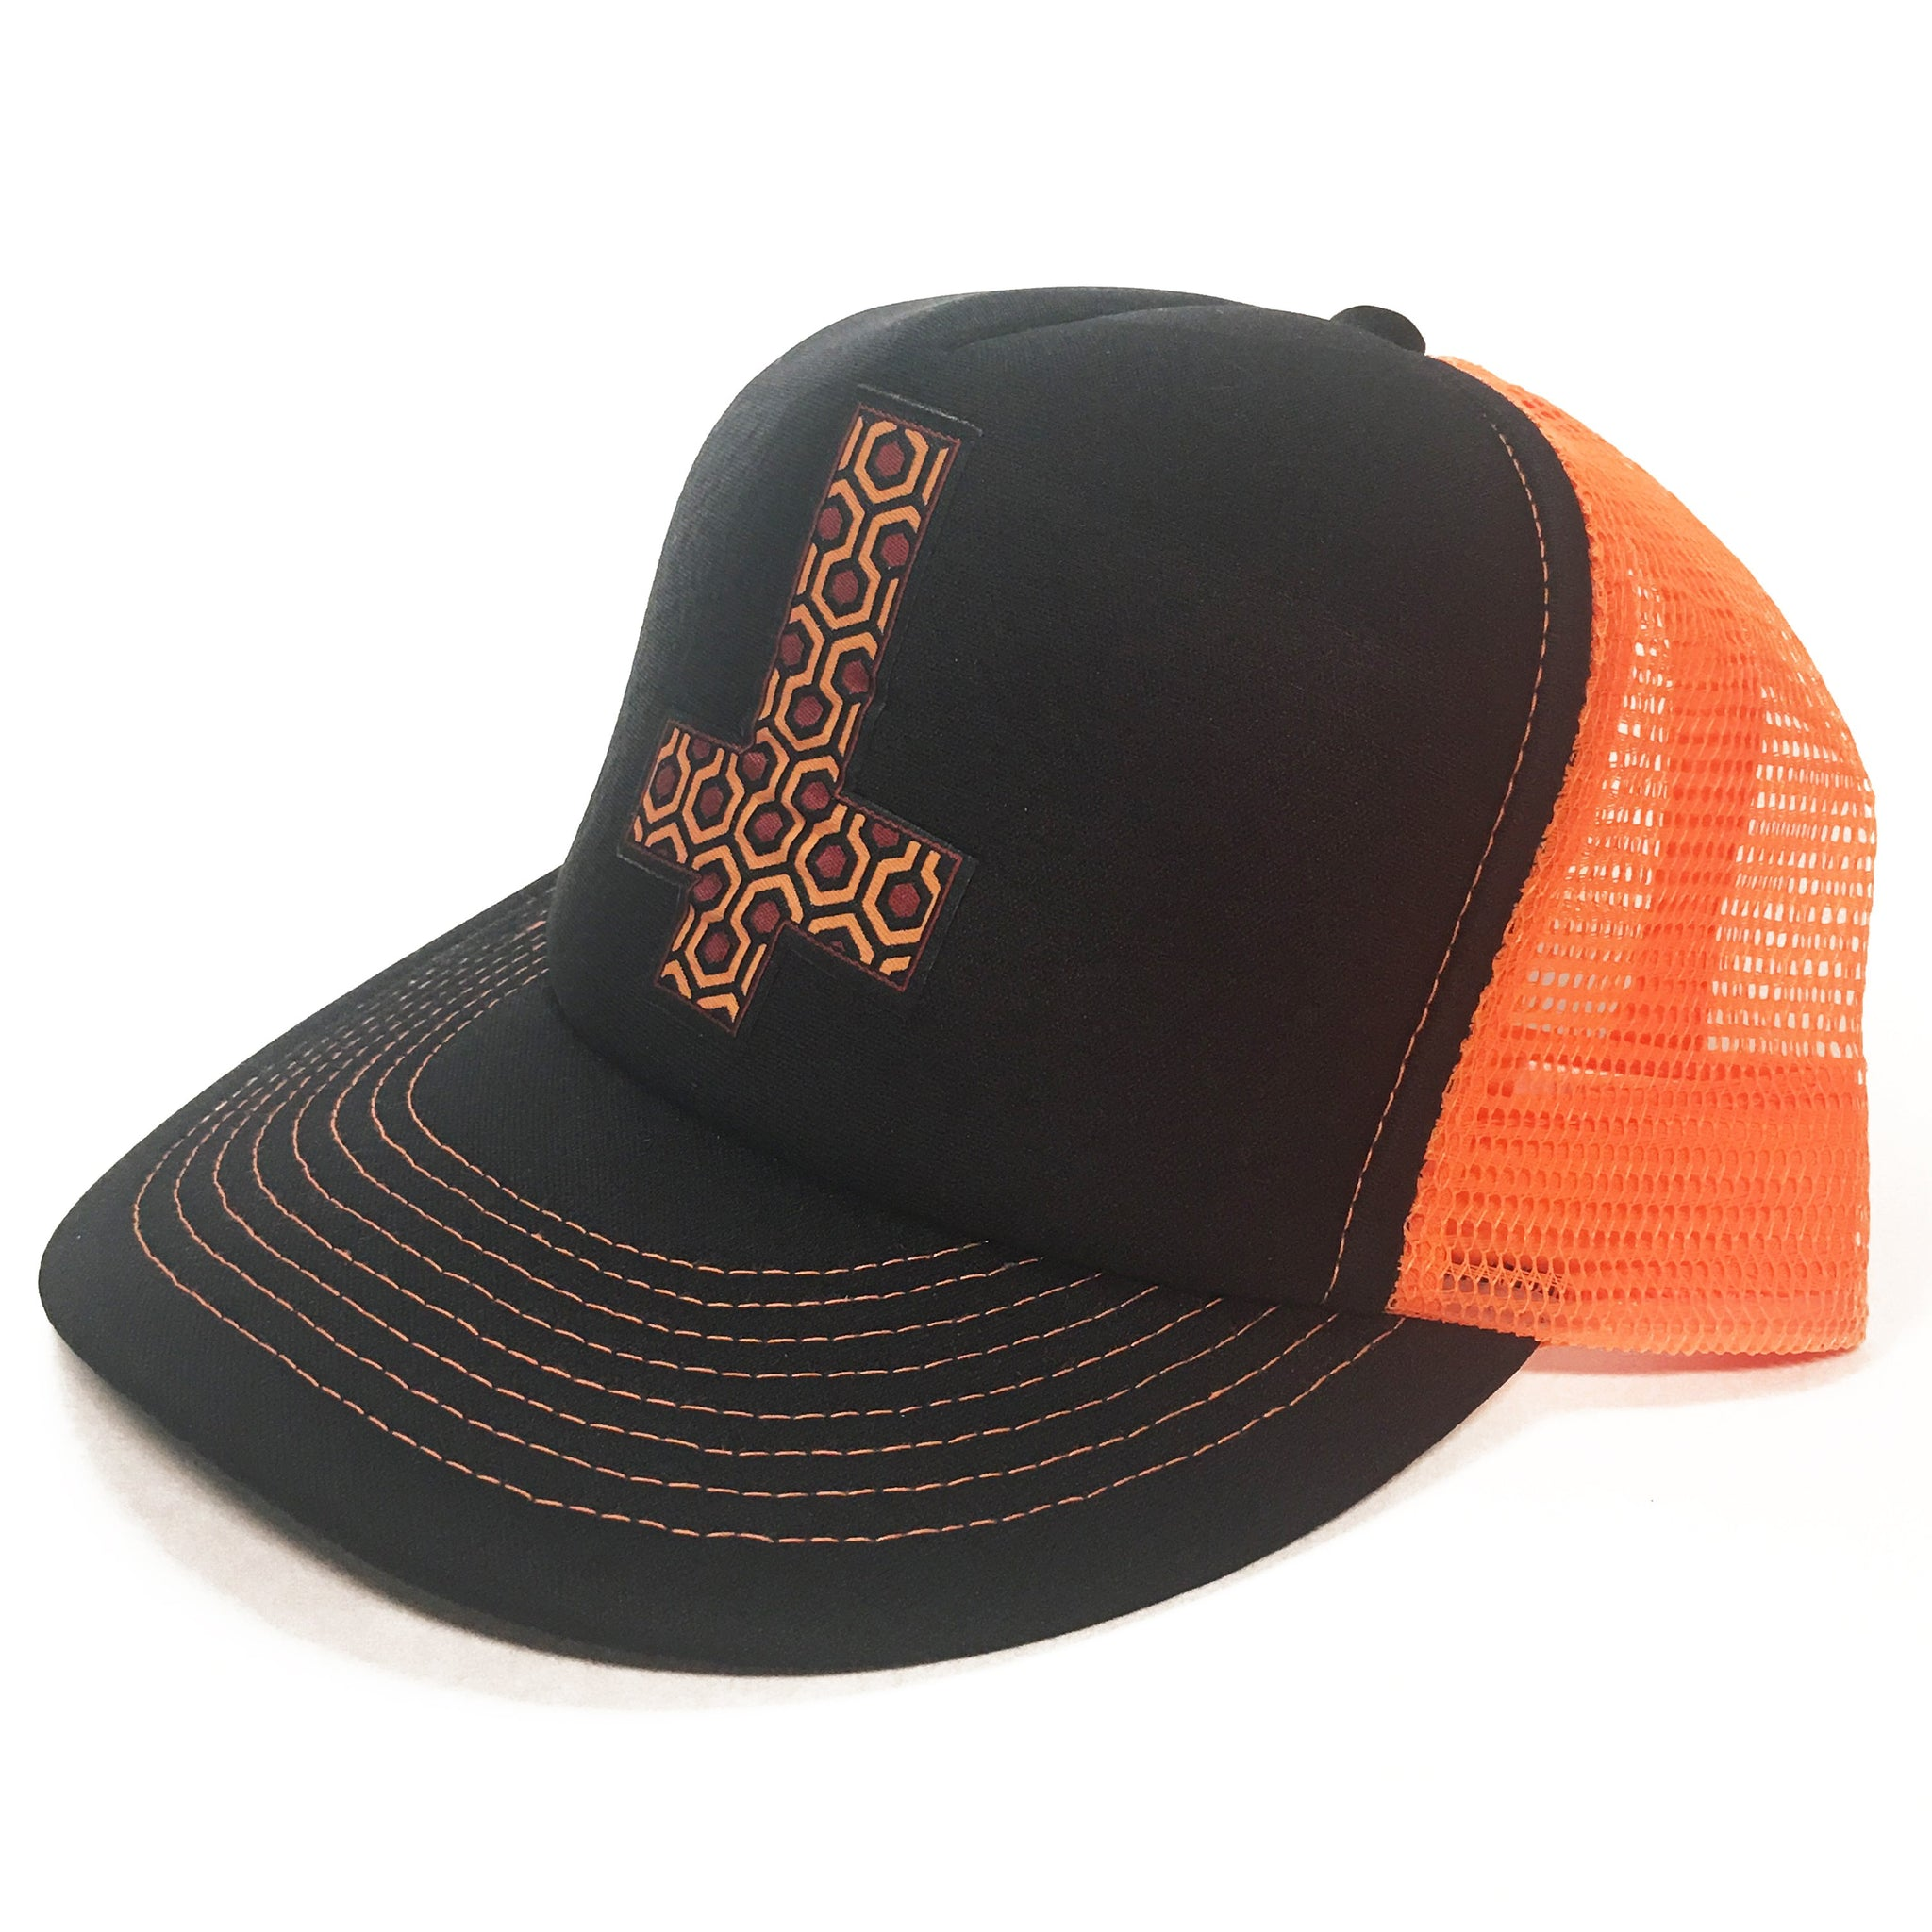 Inverted Overlook Trucker Cap